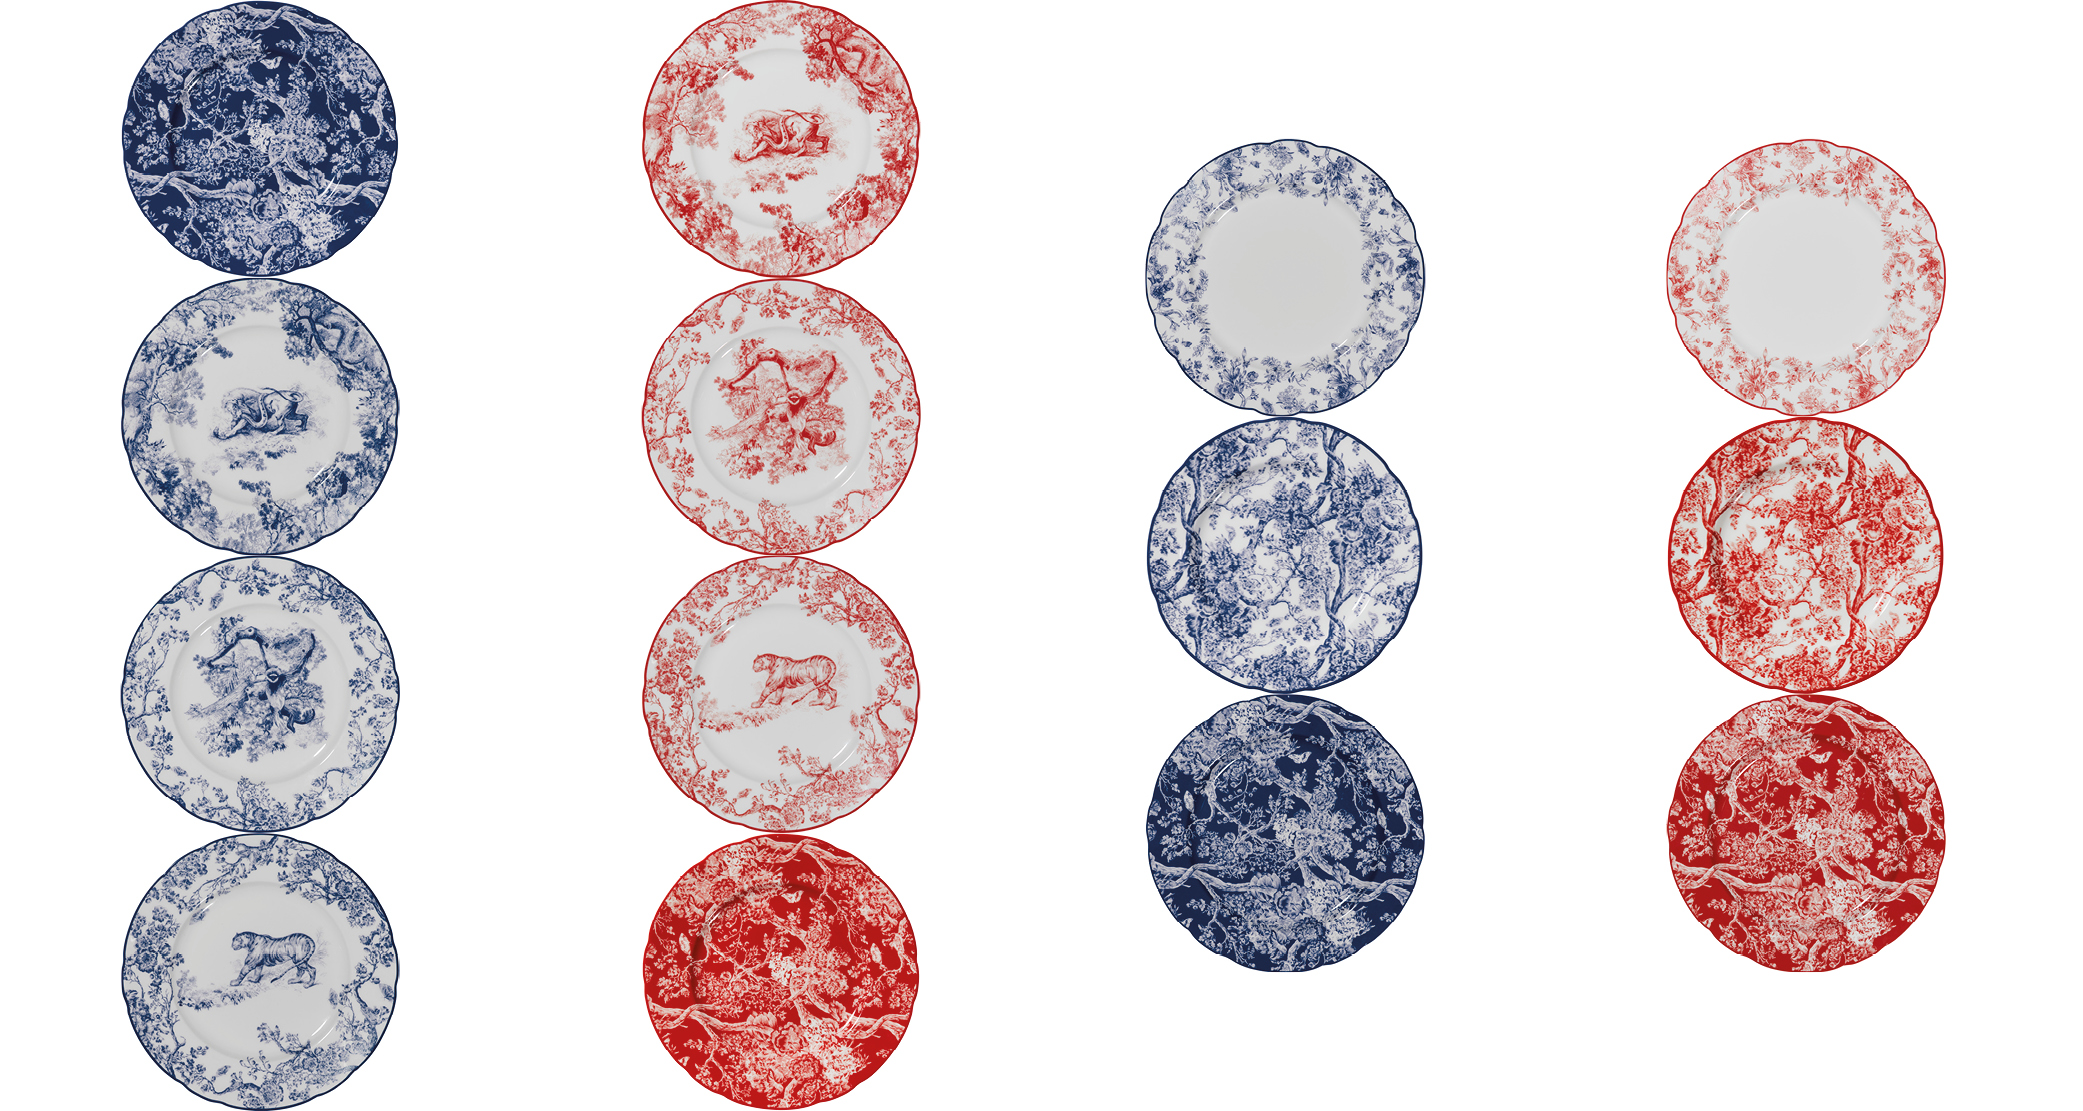 Assiettes de la collection toile de Jouy par Dior